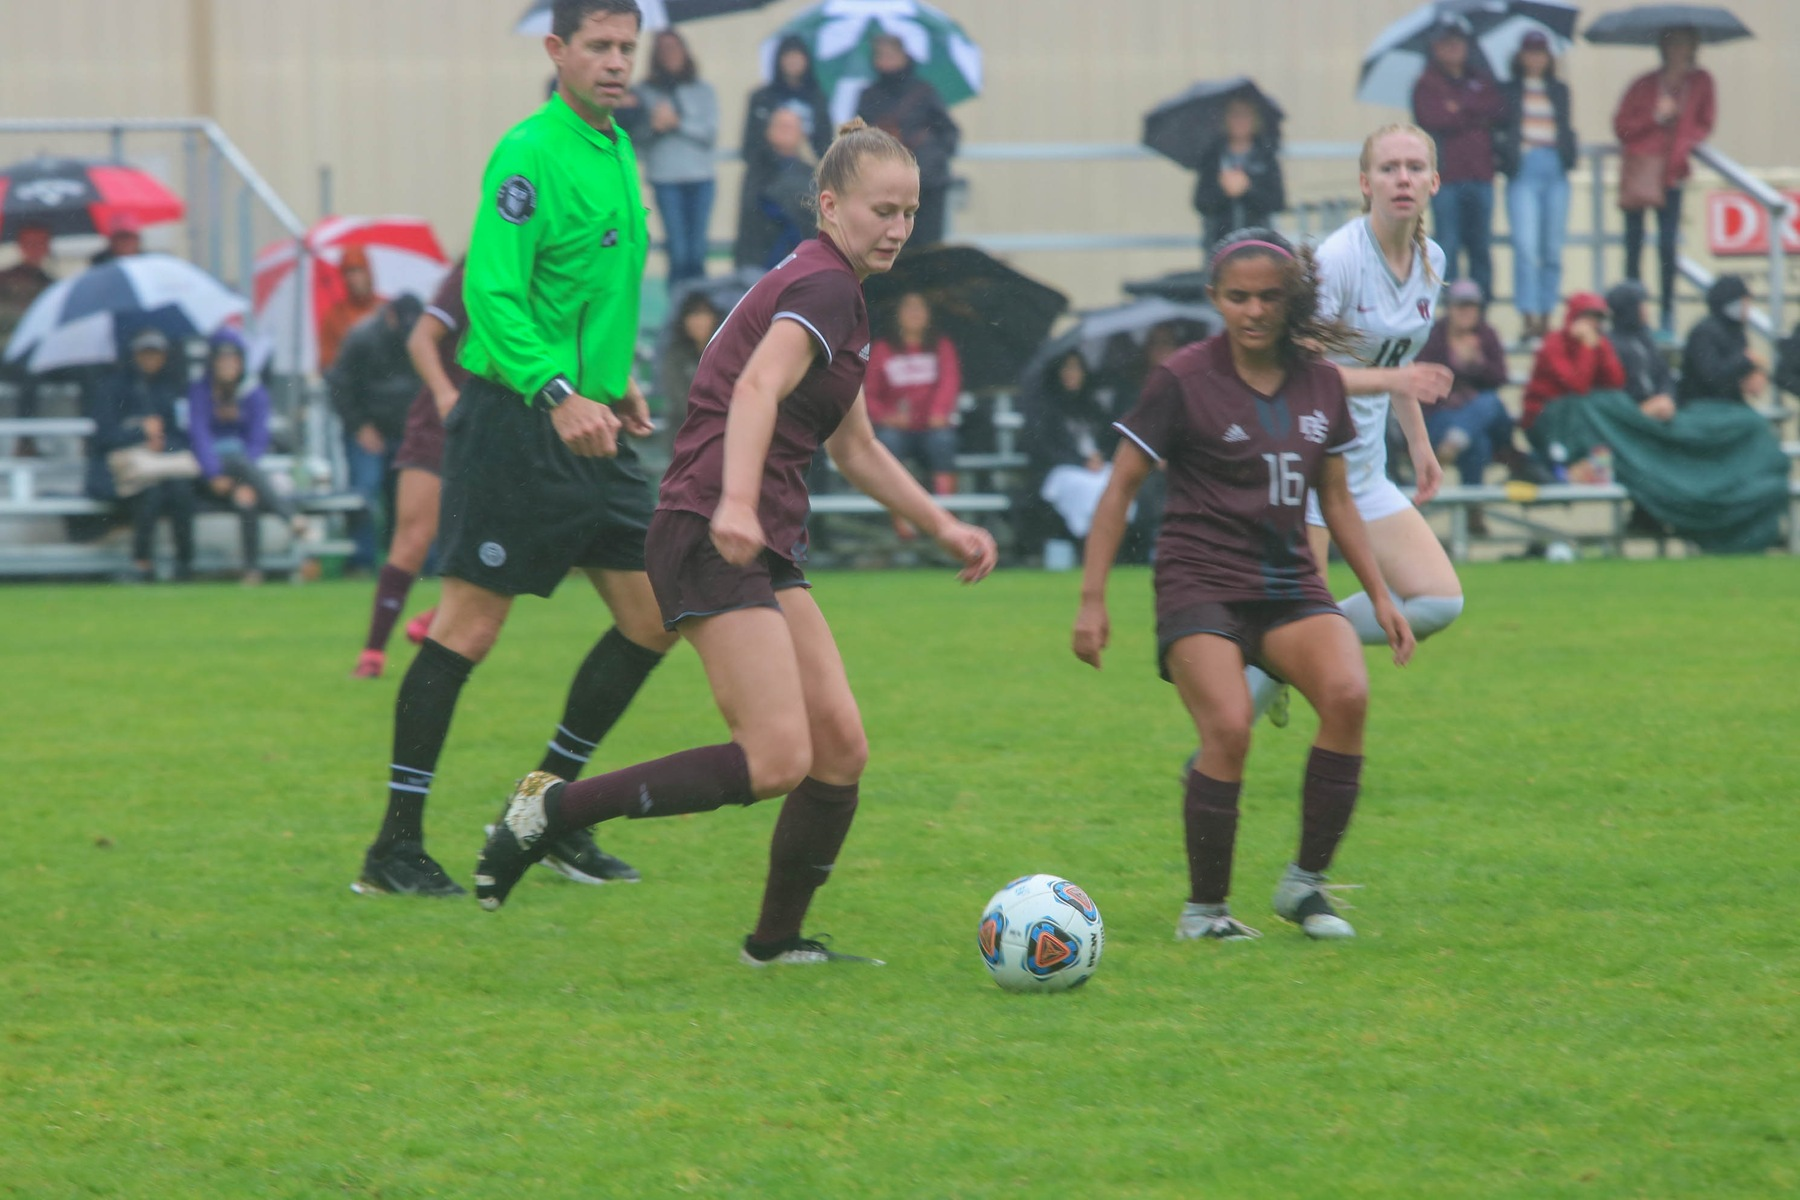 Women's soccer wins third straight, tops Whitworth, 3-1